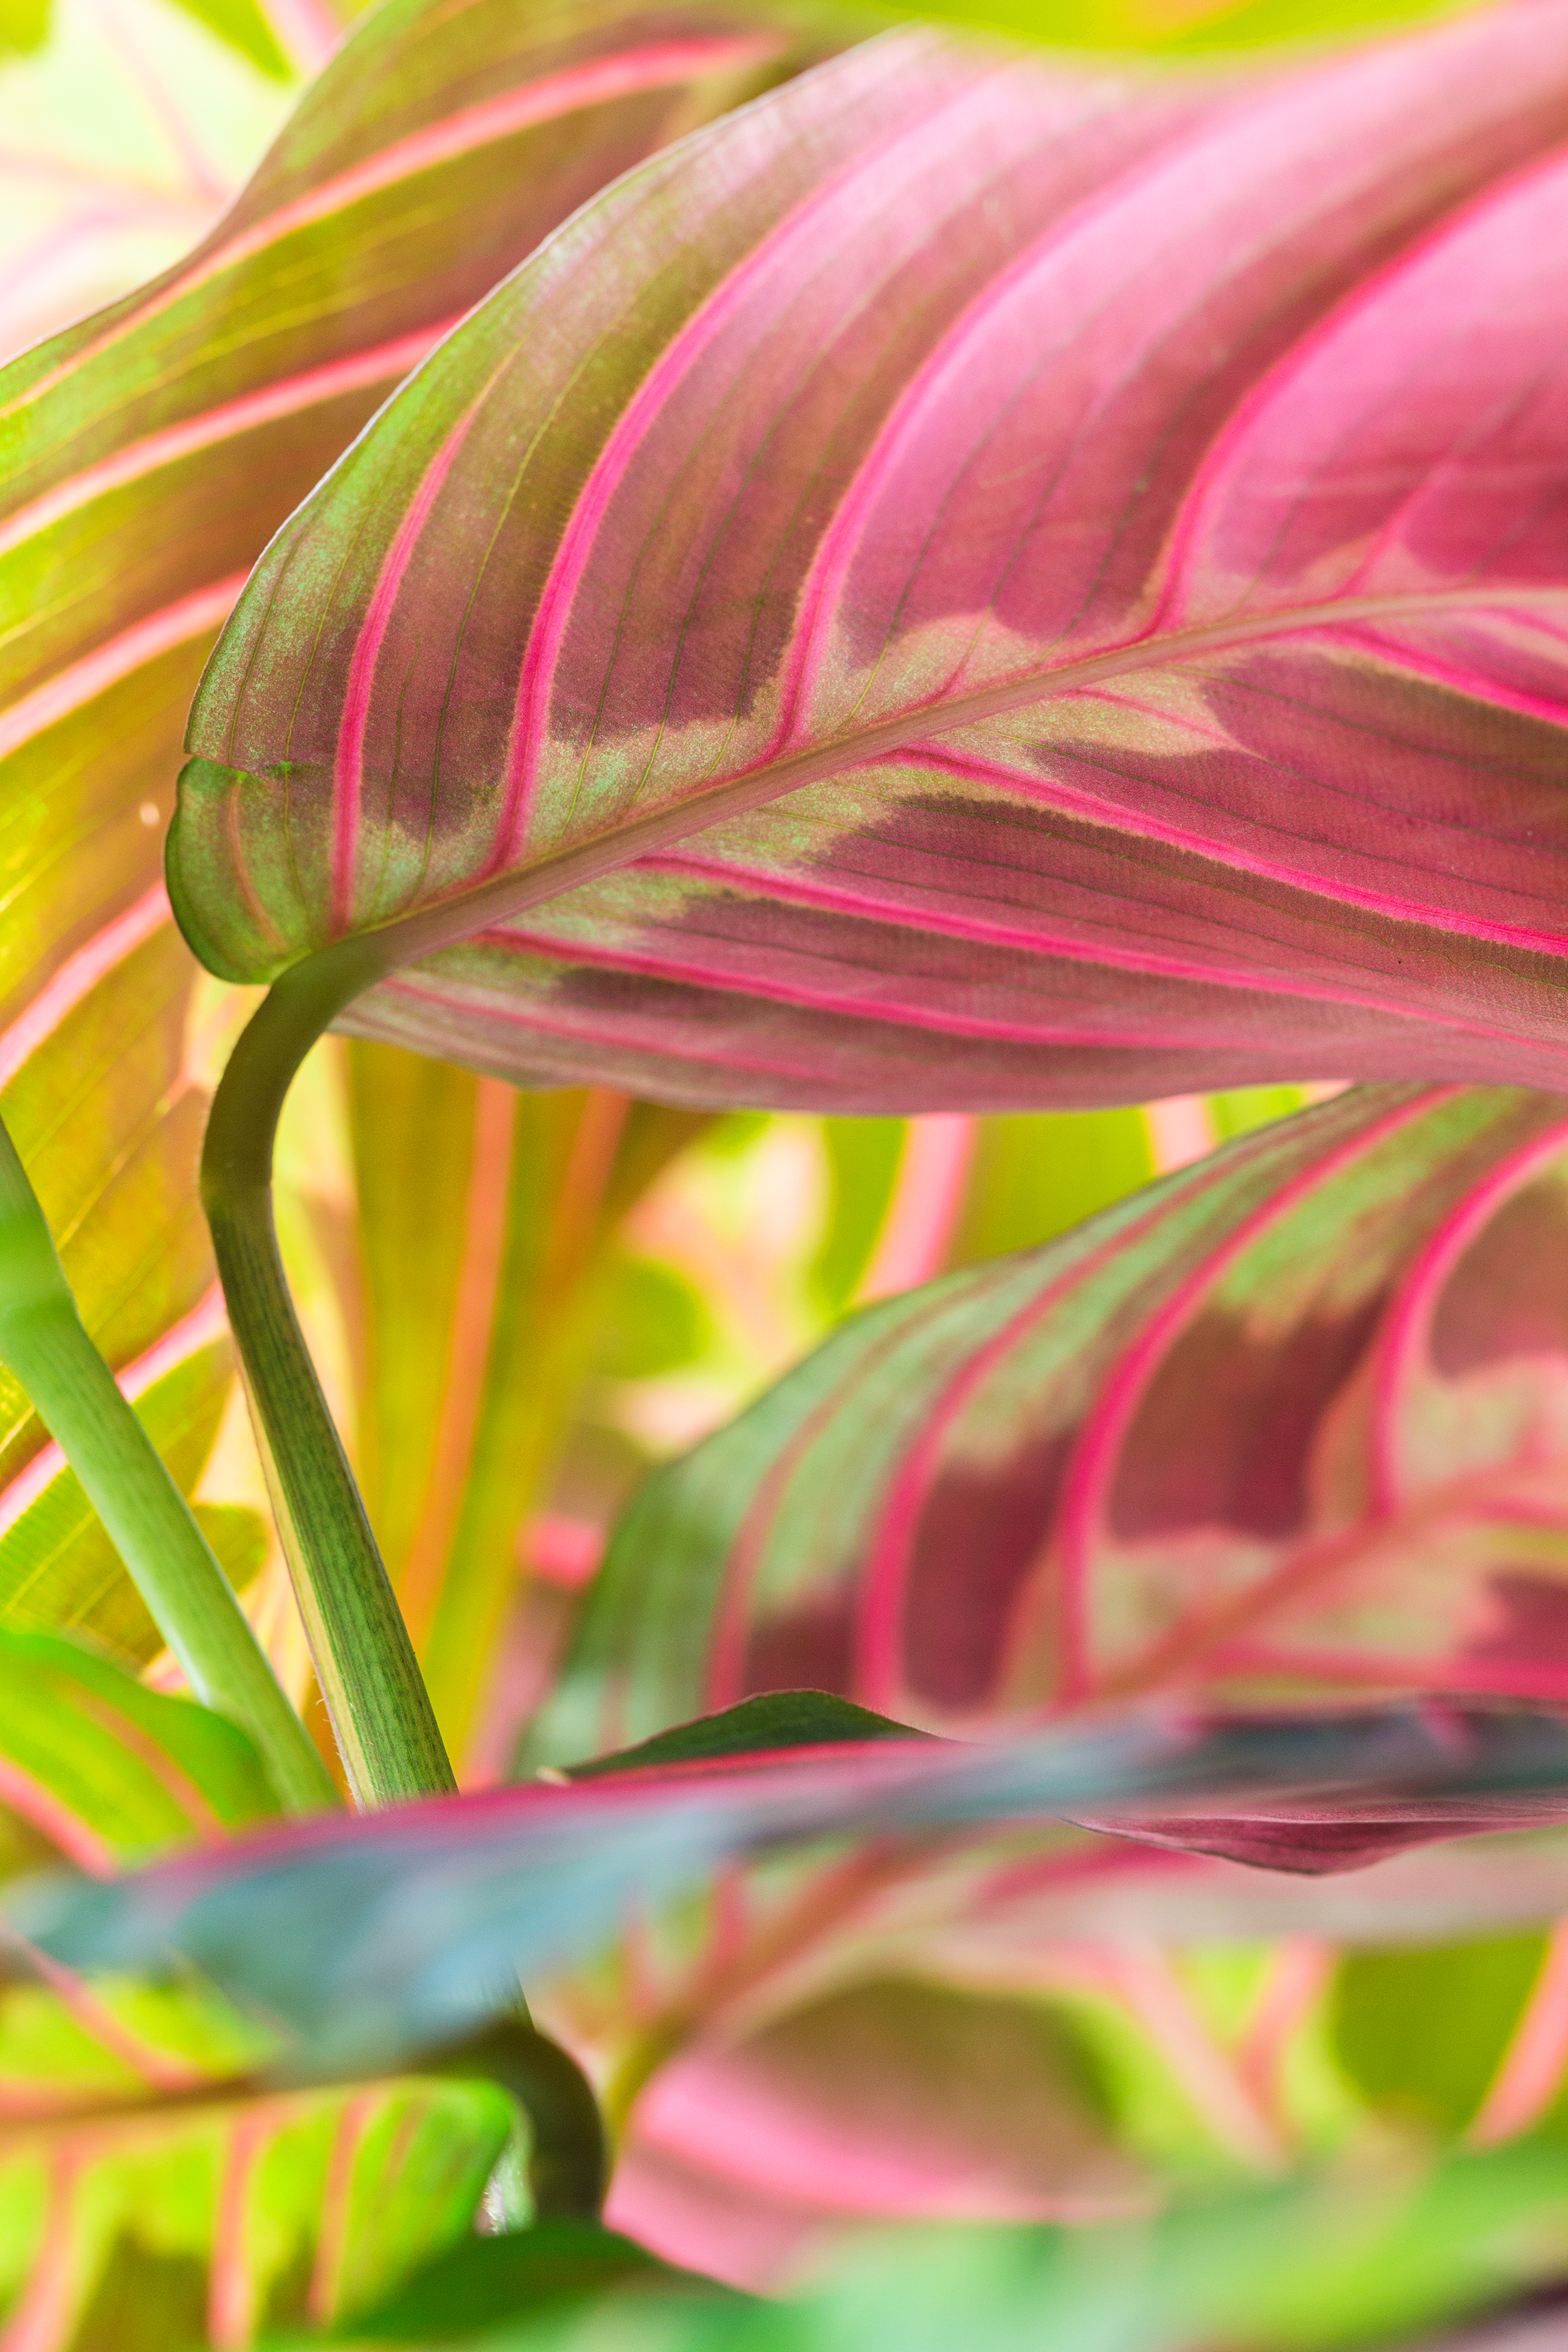 Pink Leaved Plants Are The New Houseplant Trend To Watch Sunset Sunset Magazine